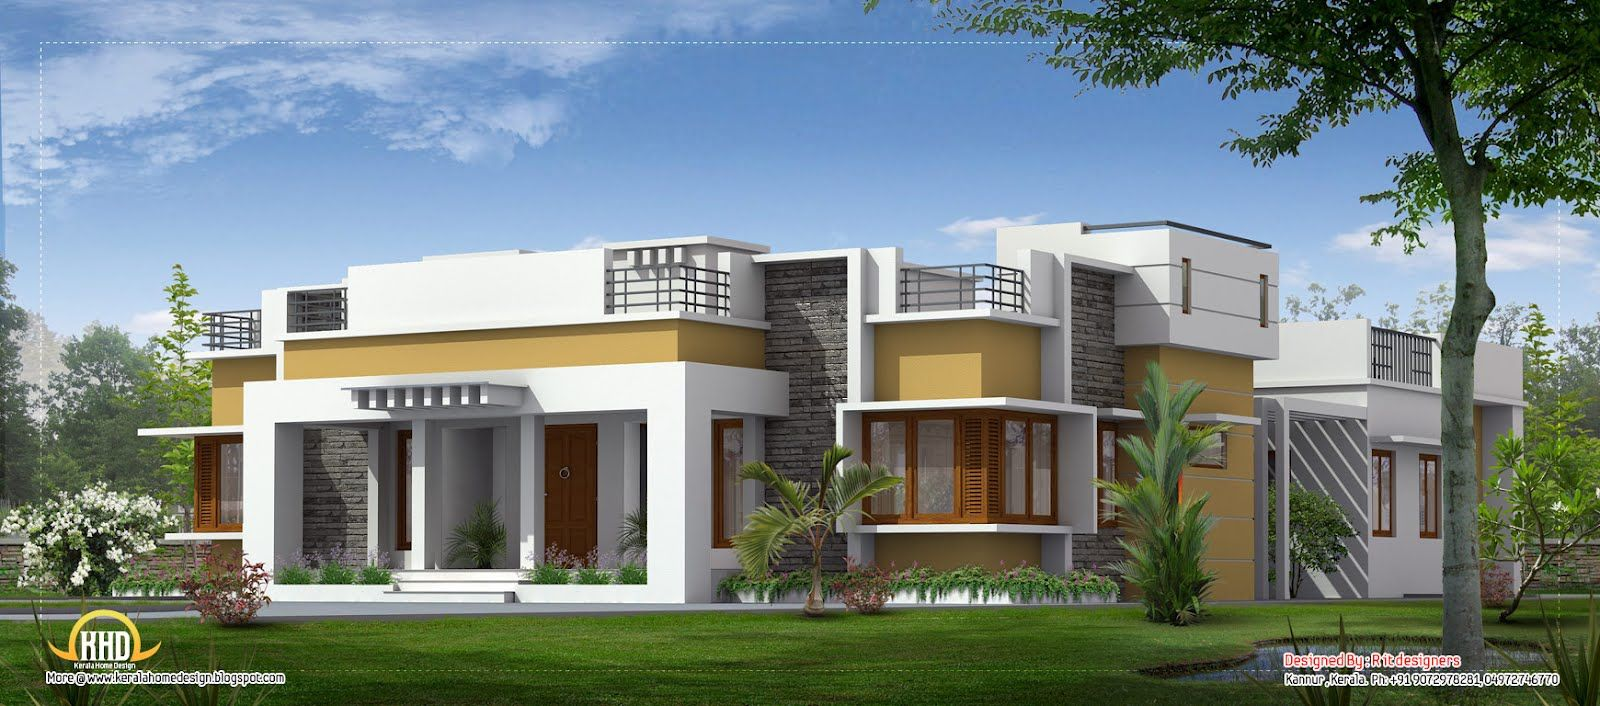 Single level designer home single floor house plans for One level house exterior design